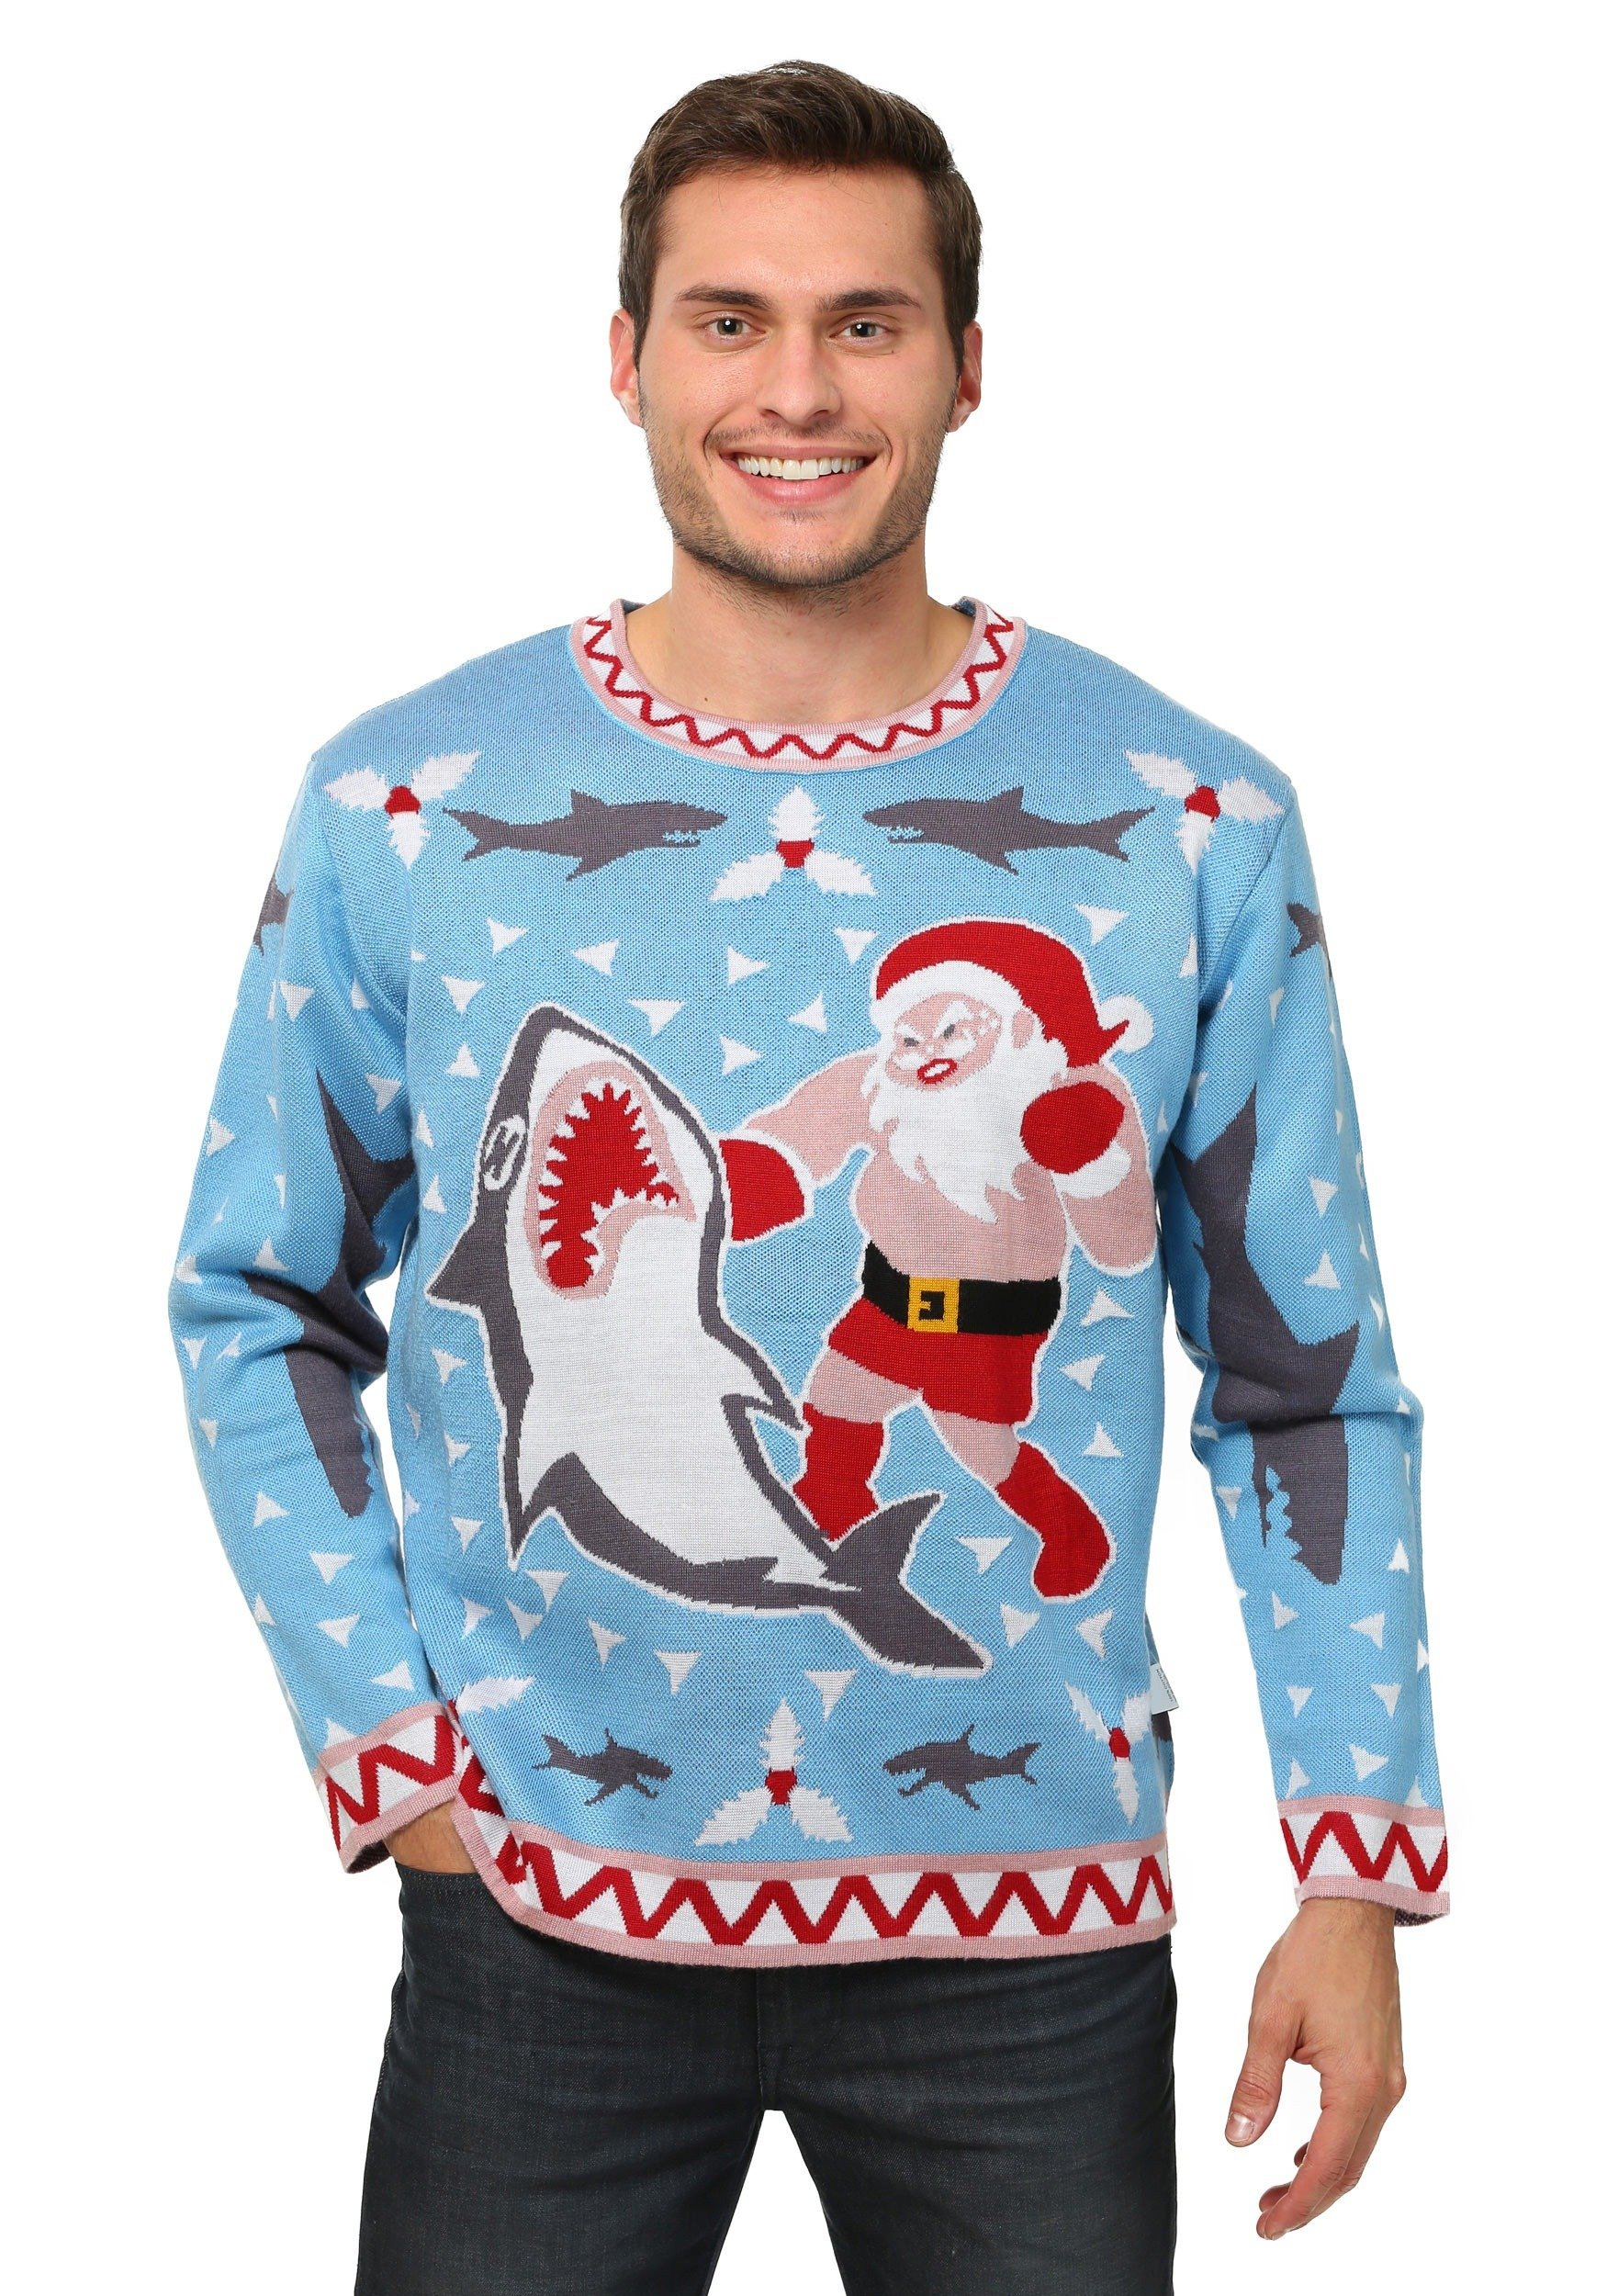 Men's Santa vs Shark Ugly Christmas Sweater Medium by FunComInc